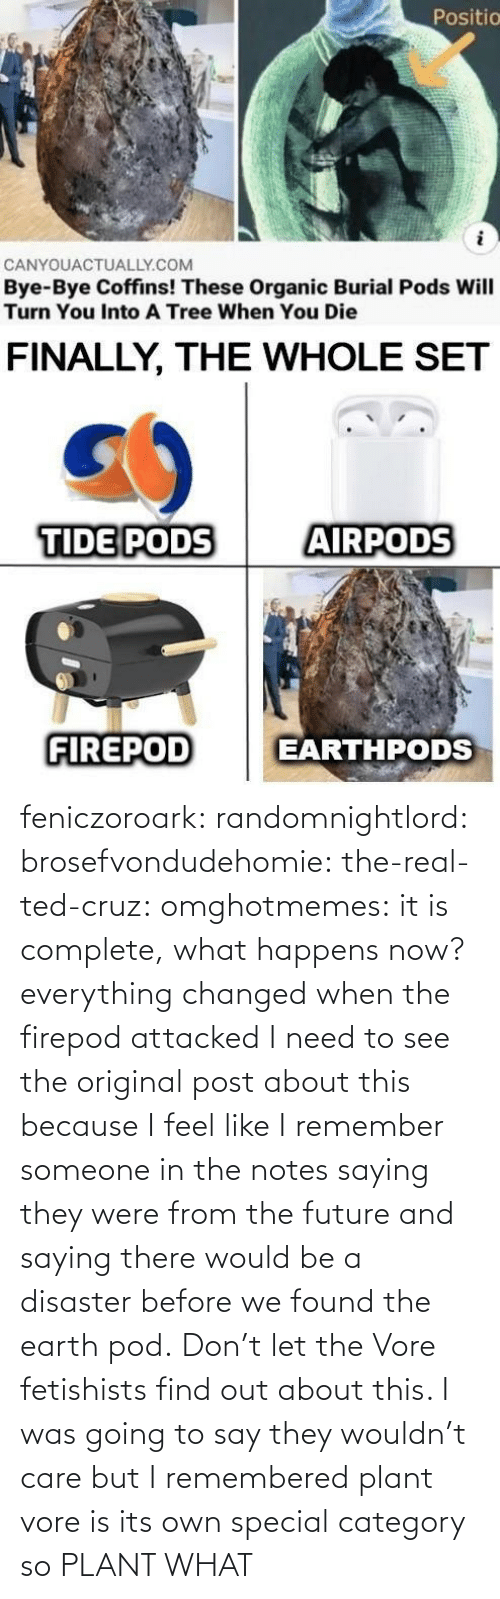 Earth: feniczoroark:  randomnightlord:  brosefvondudehomie: the-real-ted-cruz:  omghotmemes: it is complete, what happens now? everything changed when the firepod attacked    I need to see the original post about this because I feel like I remember someone in the notes saying they were from the future and saying there would be a disaster before we found the earth pod.    Don't let the Vore fetishists find out about this.    I was going to say they wouldn't care but I remembered plant vore is its own special category so   PLANT WHAT